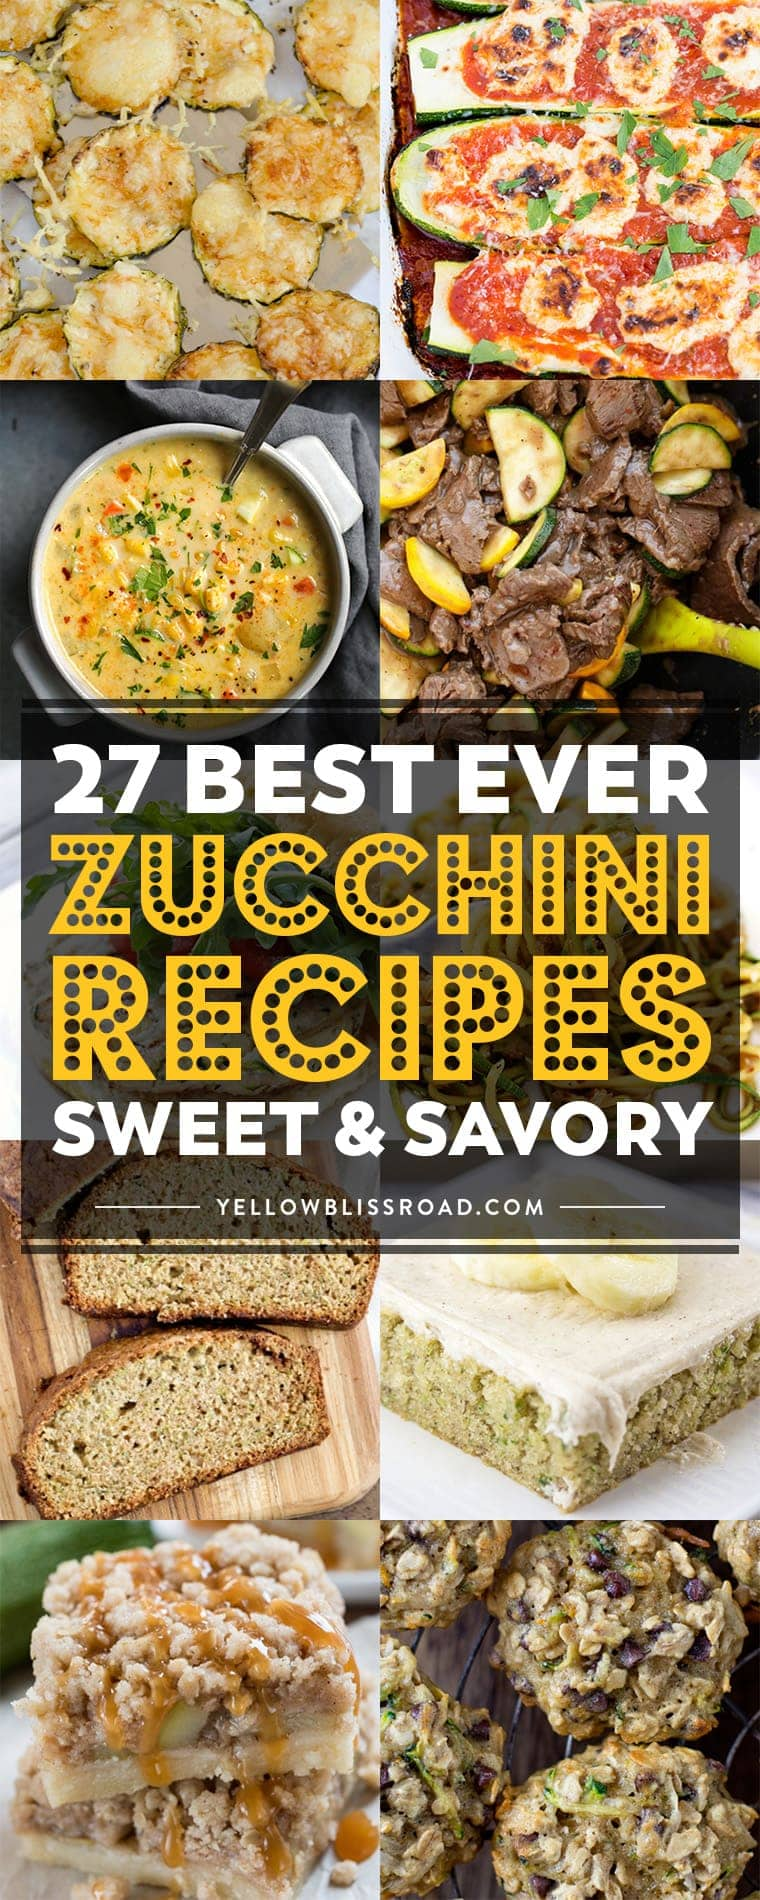 Image of 27 Best Ever Zucchini Recipes